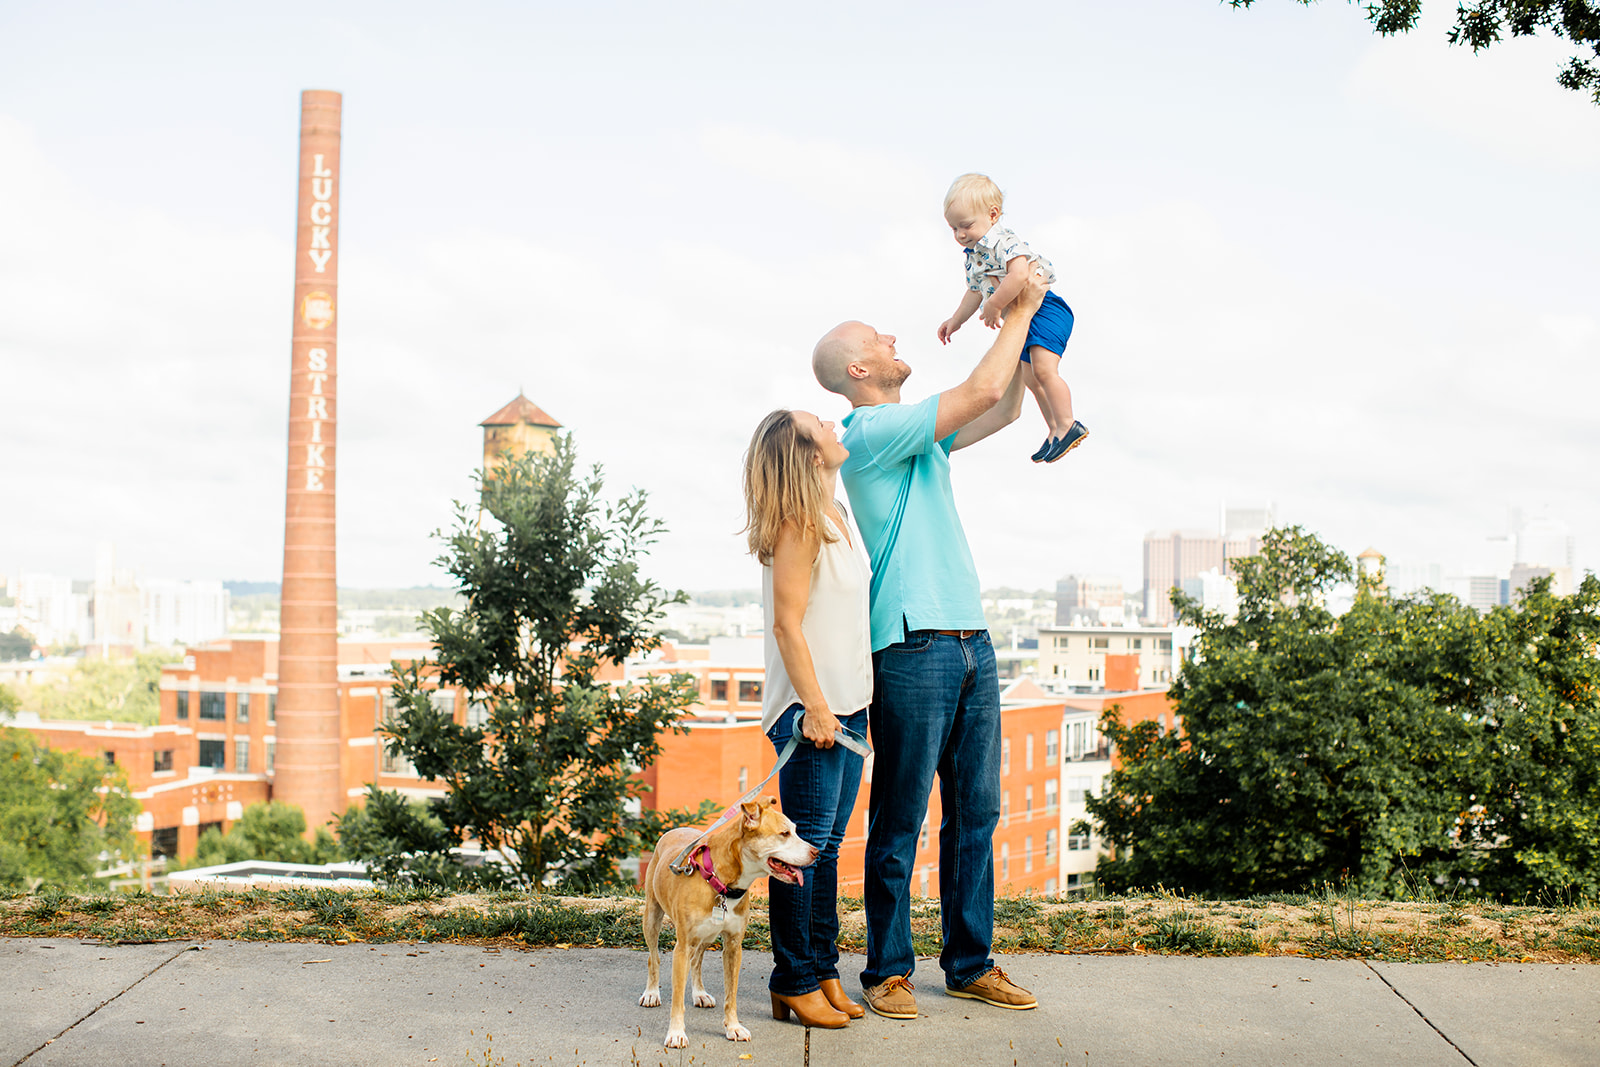 Libby Hill Park One Year Old Mini Family Photo Shoot - Image Property of www.j-dphoto.com